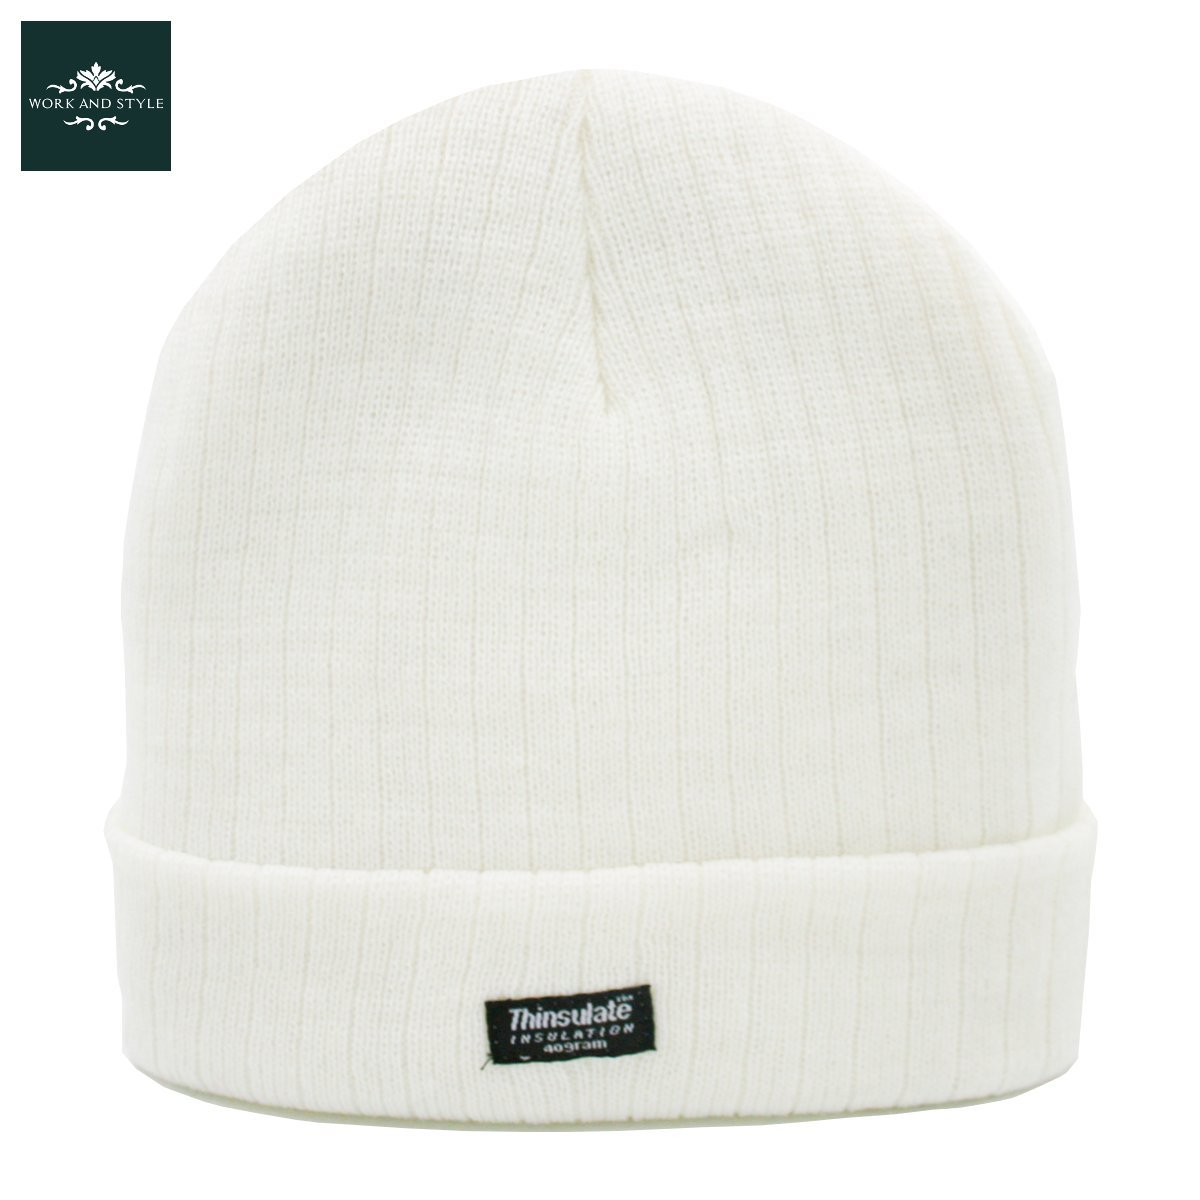 Warmy – Gorro con Vuelta Thinsulate 3M Beanie - by Work and Style - Verde Oliva, Talla única (aprox. 53-60 cm)